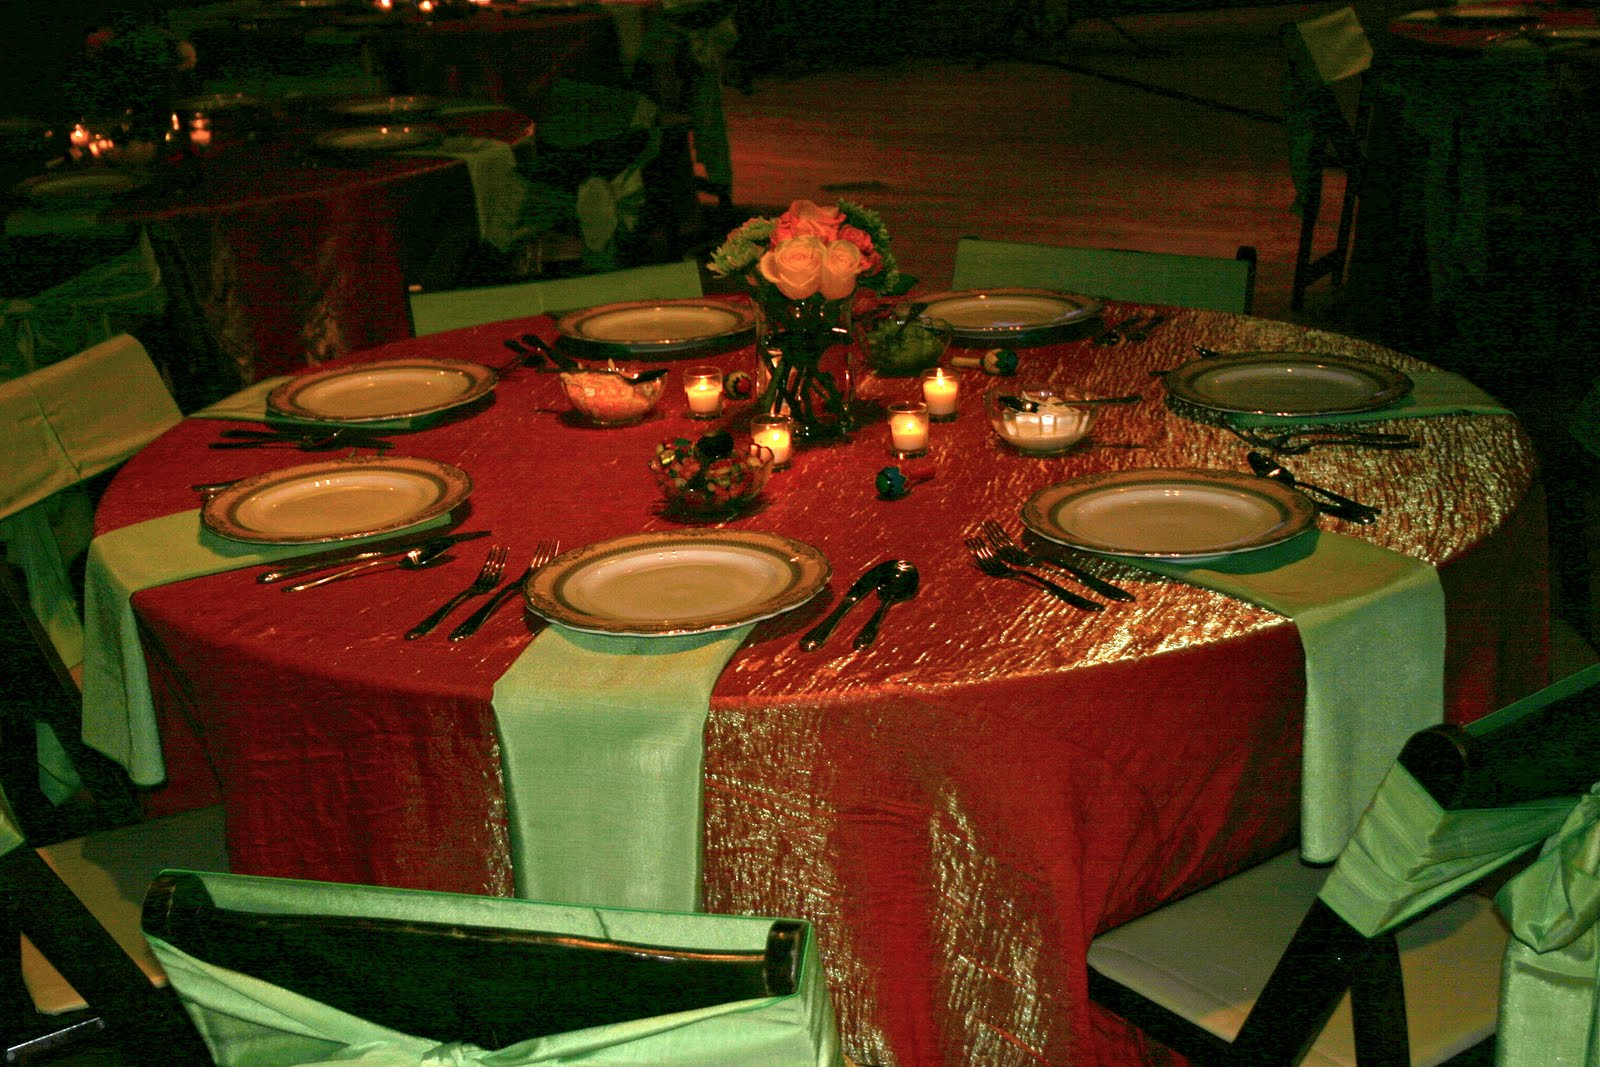 Monday November 28 2011 & Nashville Event Planning: Elegant Mexican Rehearsal Dinner Party